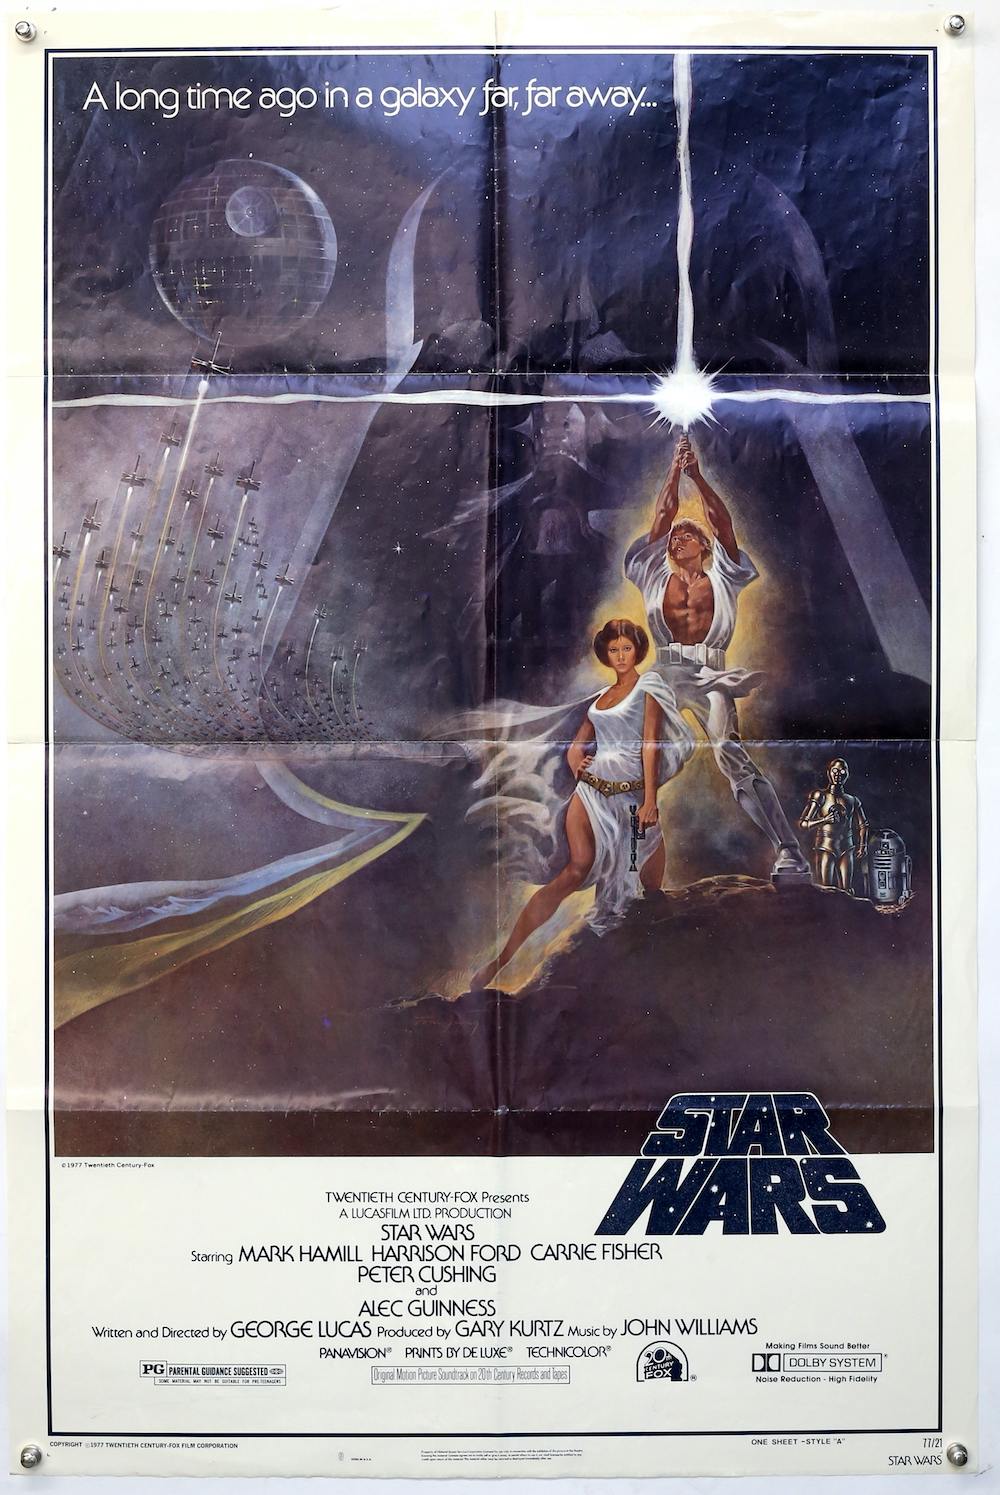 A poster for the original first Star Wars movie